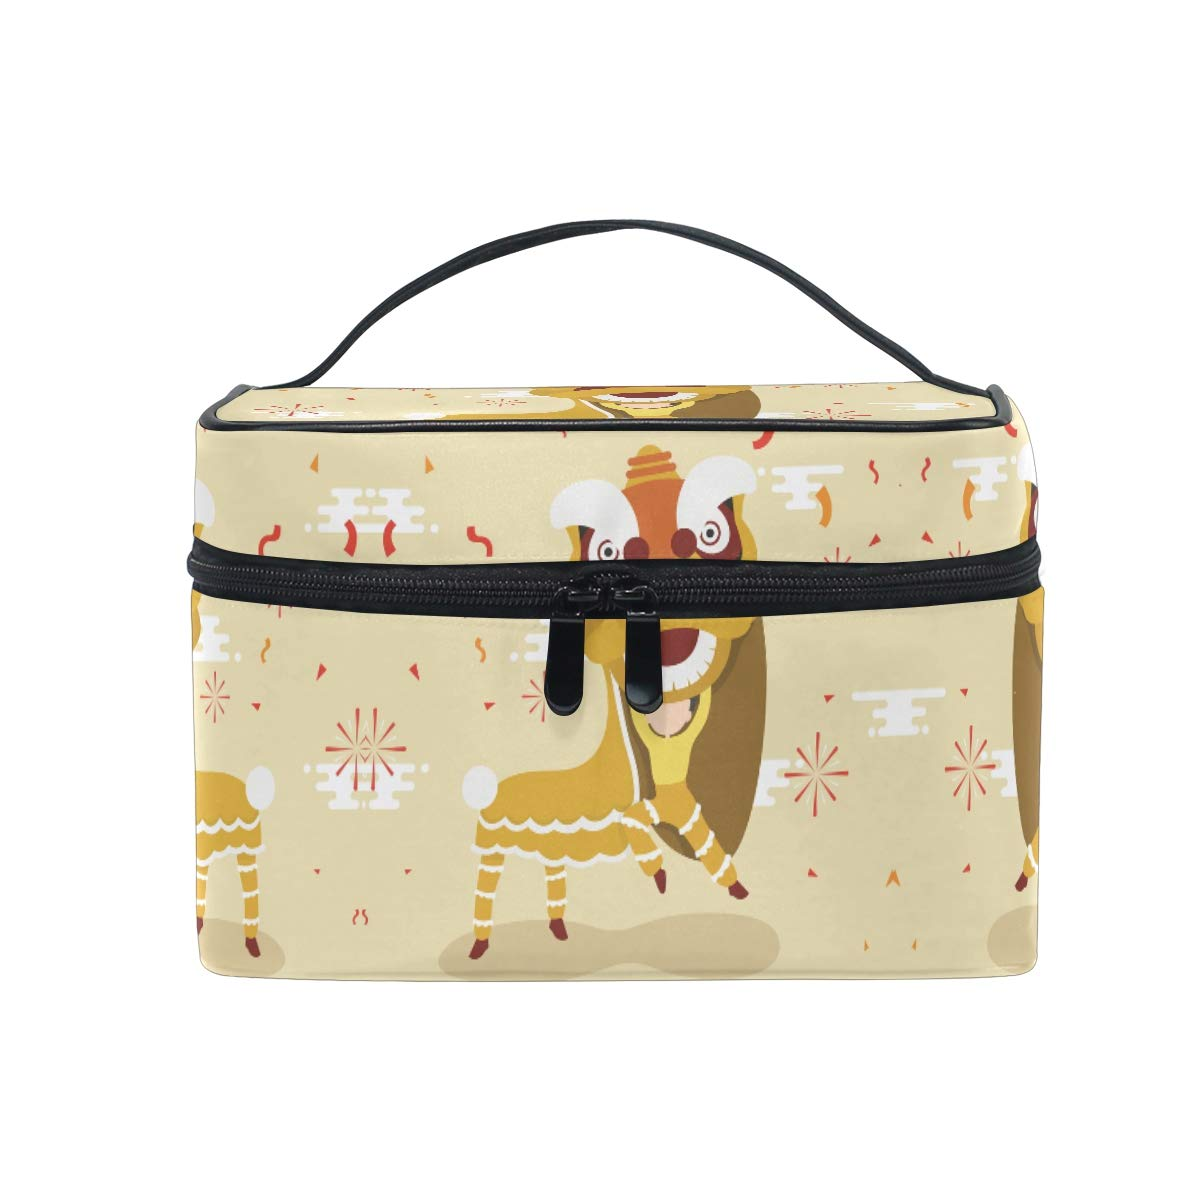 Chinese Lion Dance Women Makeup Bag Travel Cosmetic Bags Toiletry Train Case Beauty Pouch Organizer